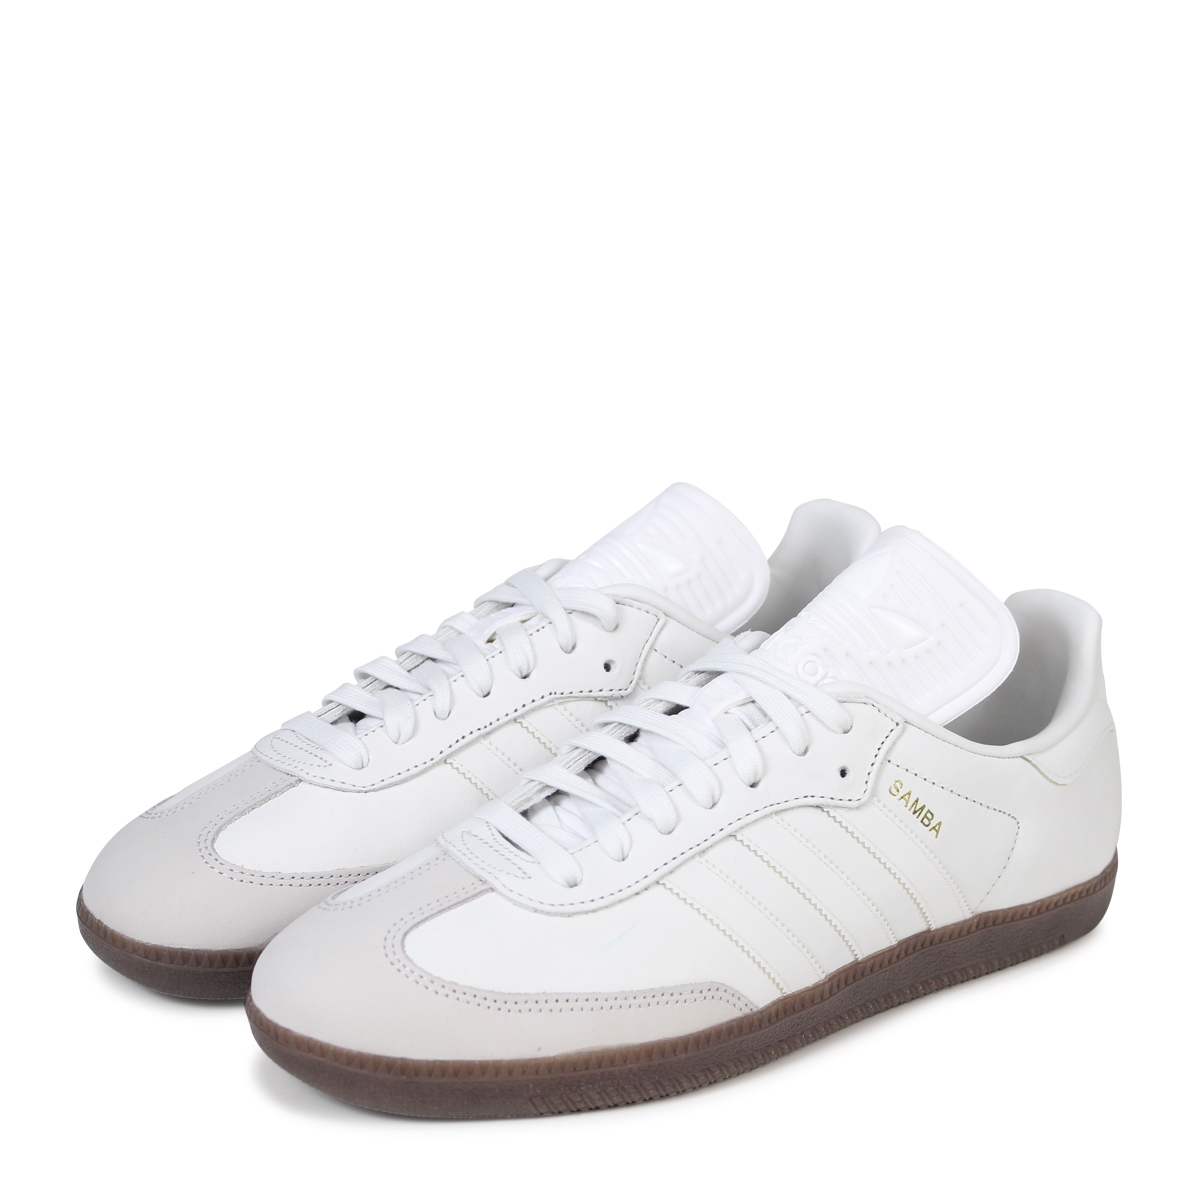 online store d0ec2 857c5 ALLSPORTS  adidas Originals SAMBA CLASSIC OG Adidas samba sneakers men  BZ0226 white originals  load planned Shinnyu load in reservation product  3 20 ...